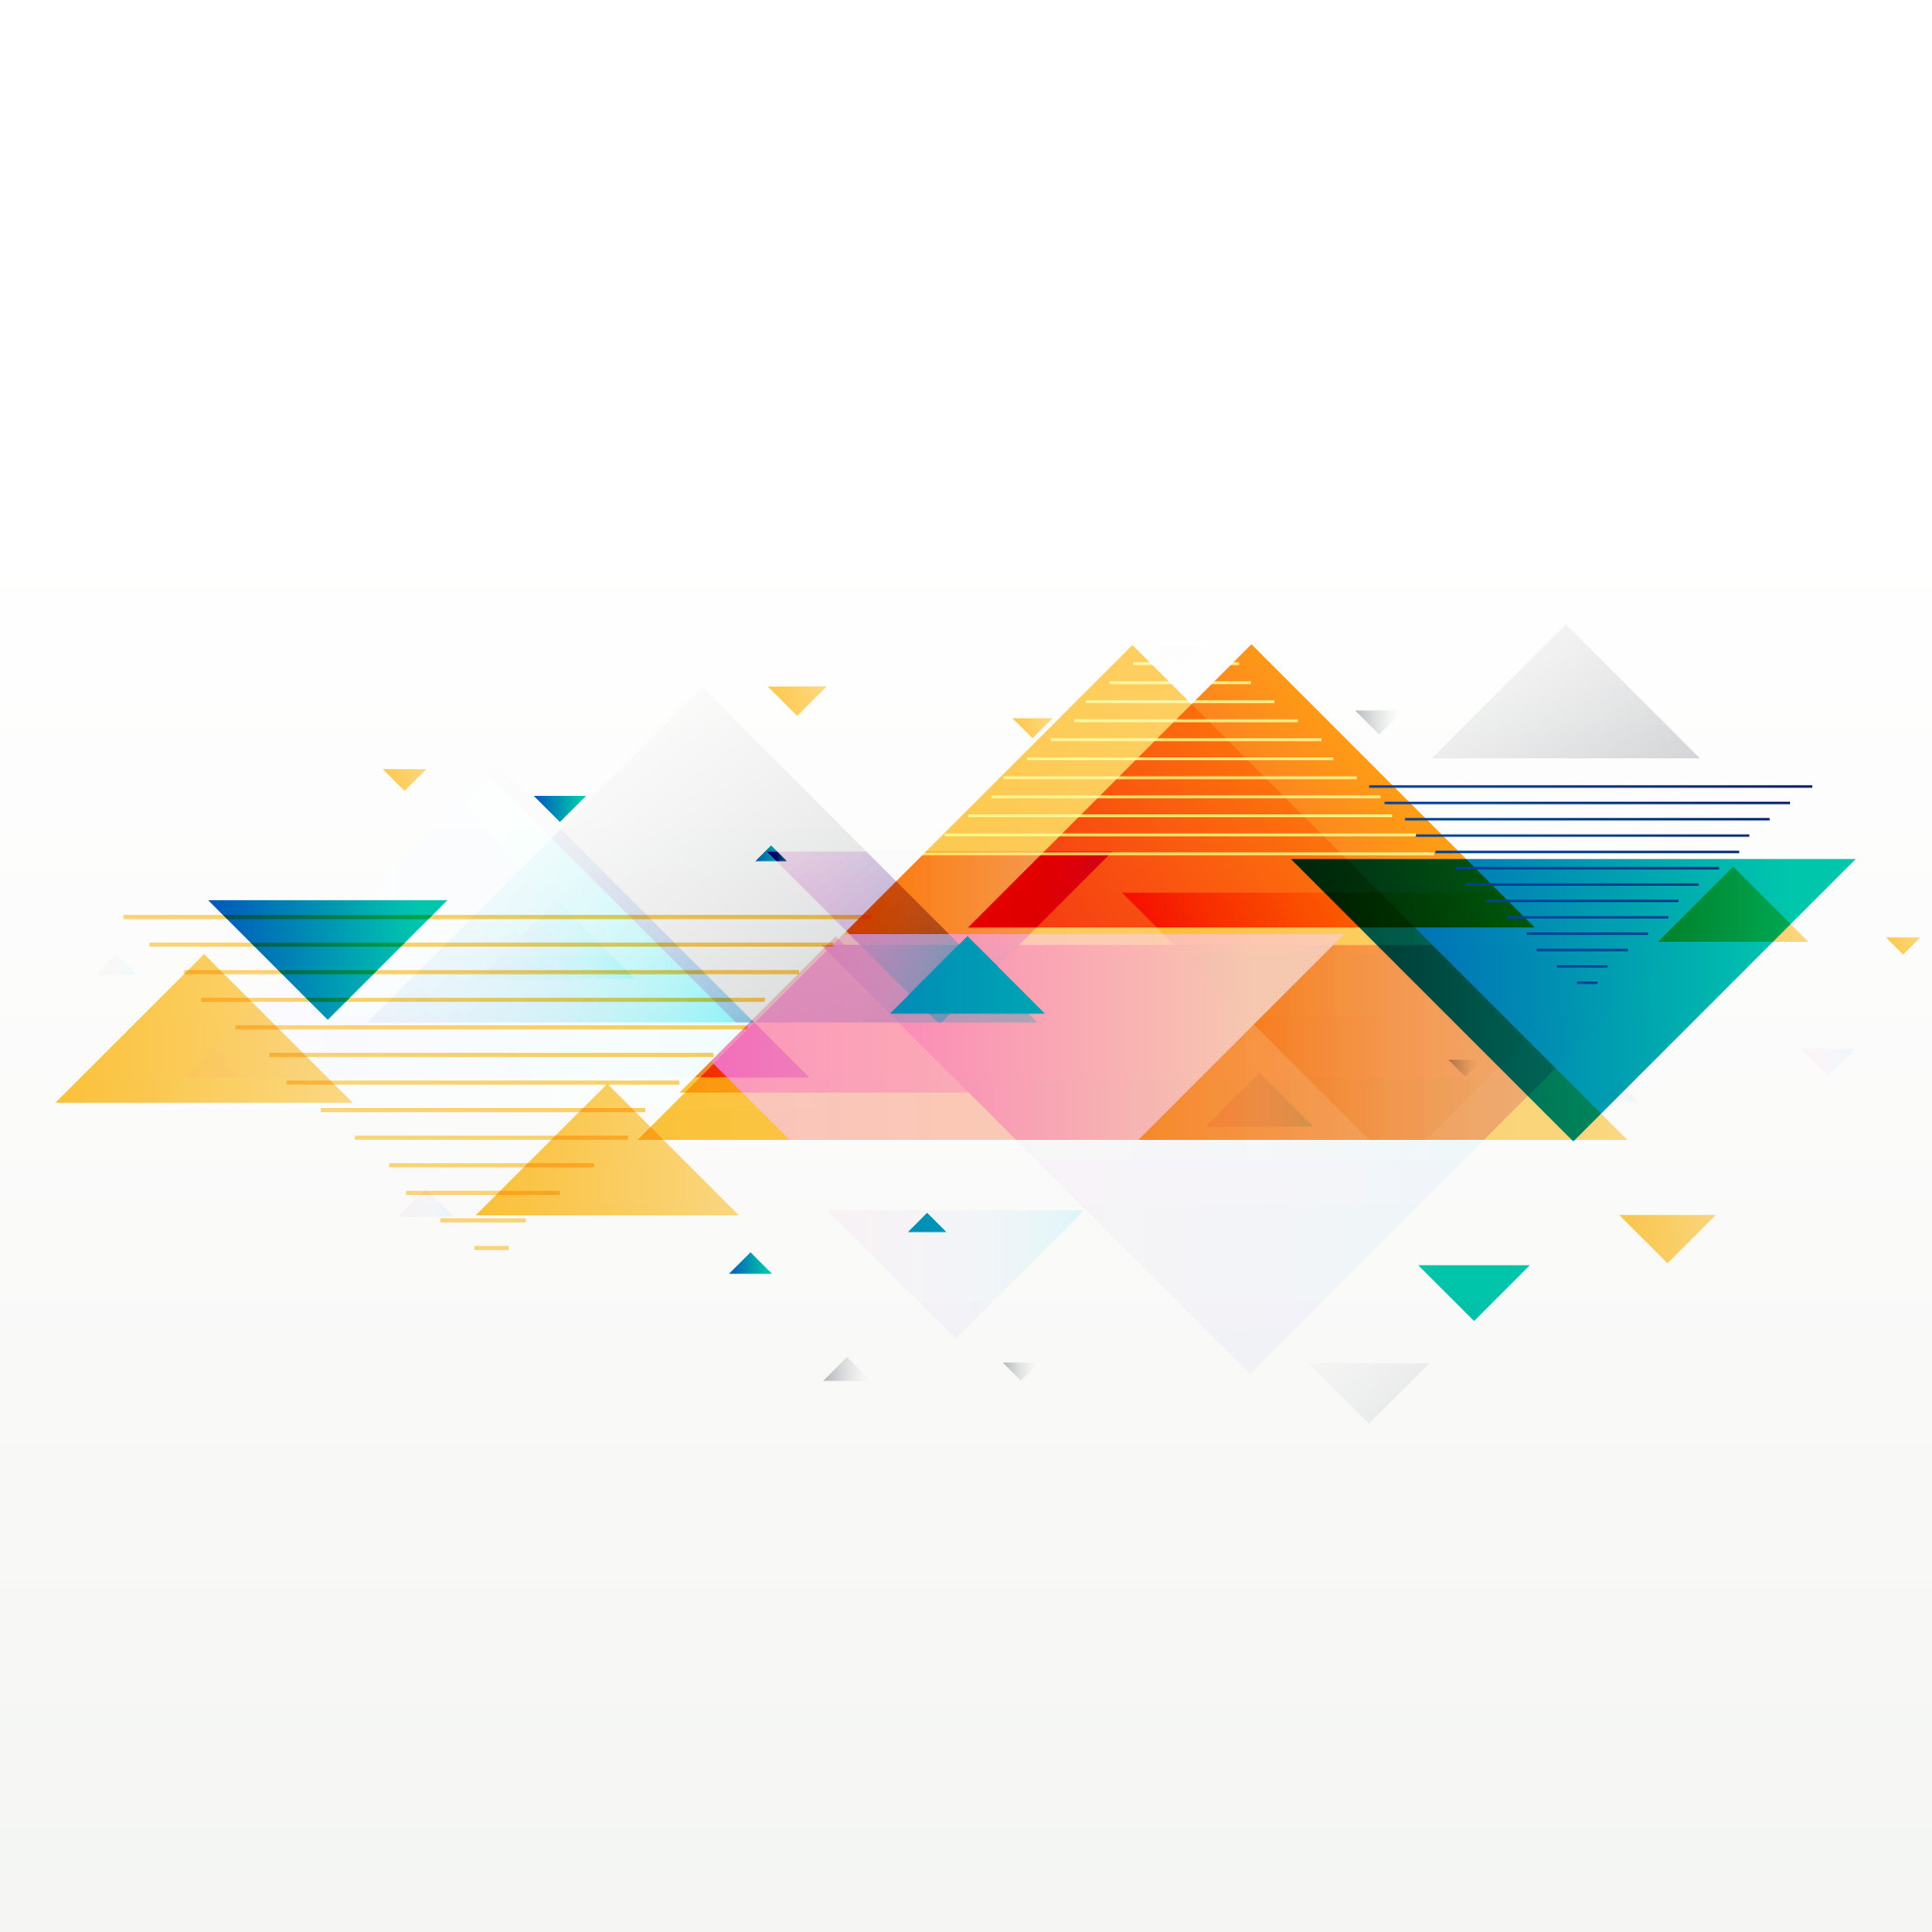 Colorful abstract geometric triangle shapes background